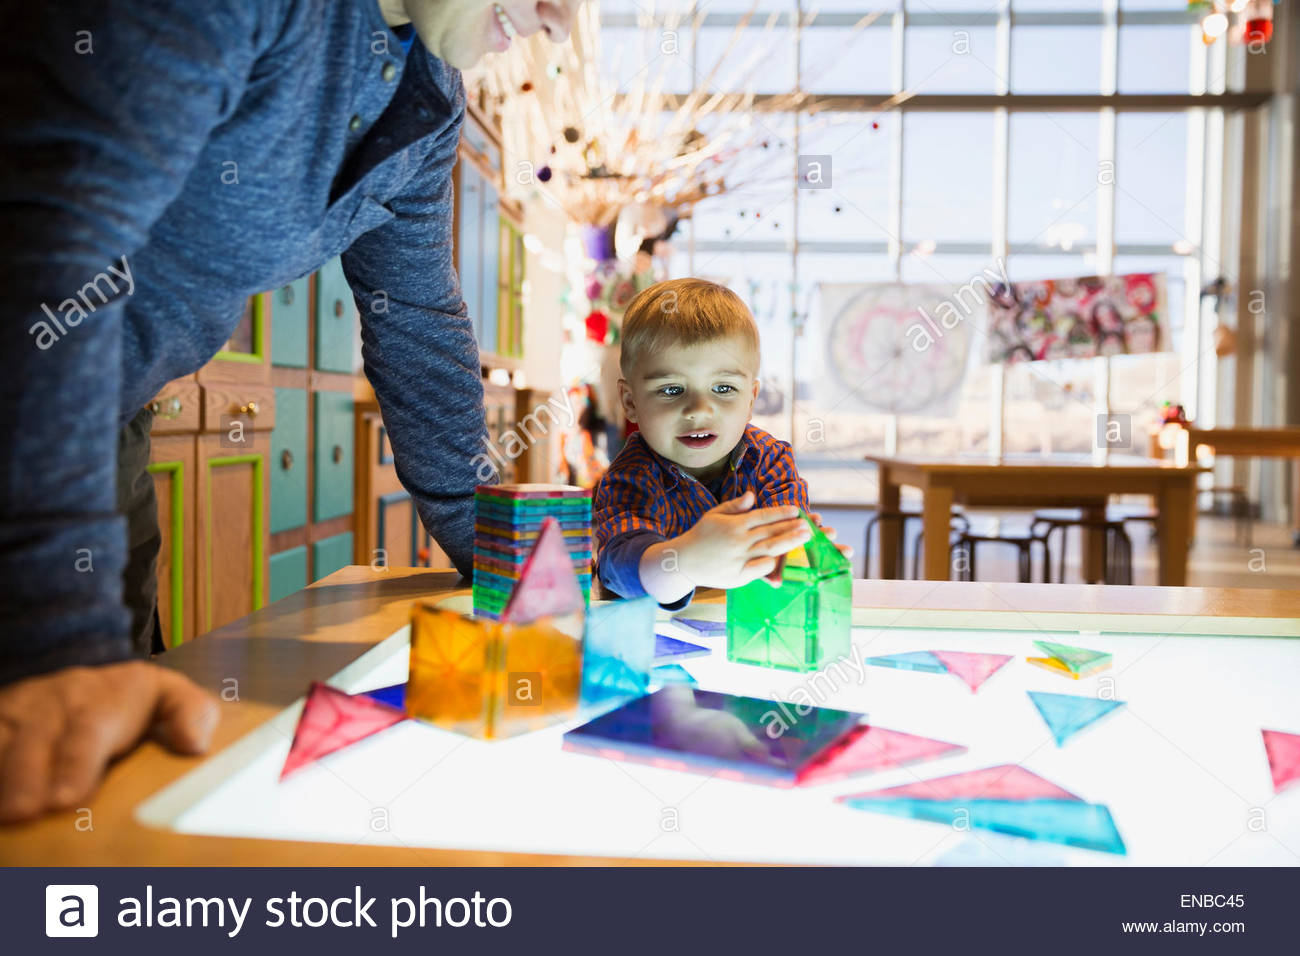 Father and son playing geometric models science center - Stock Image